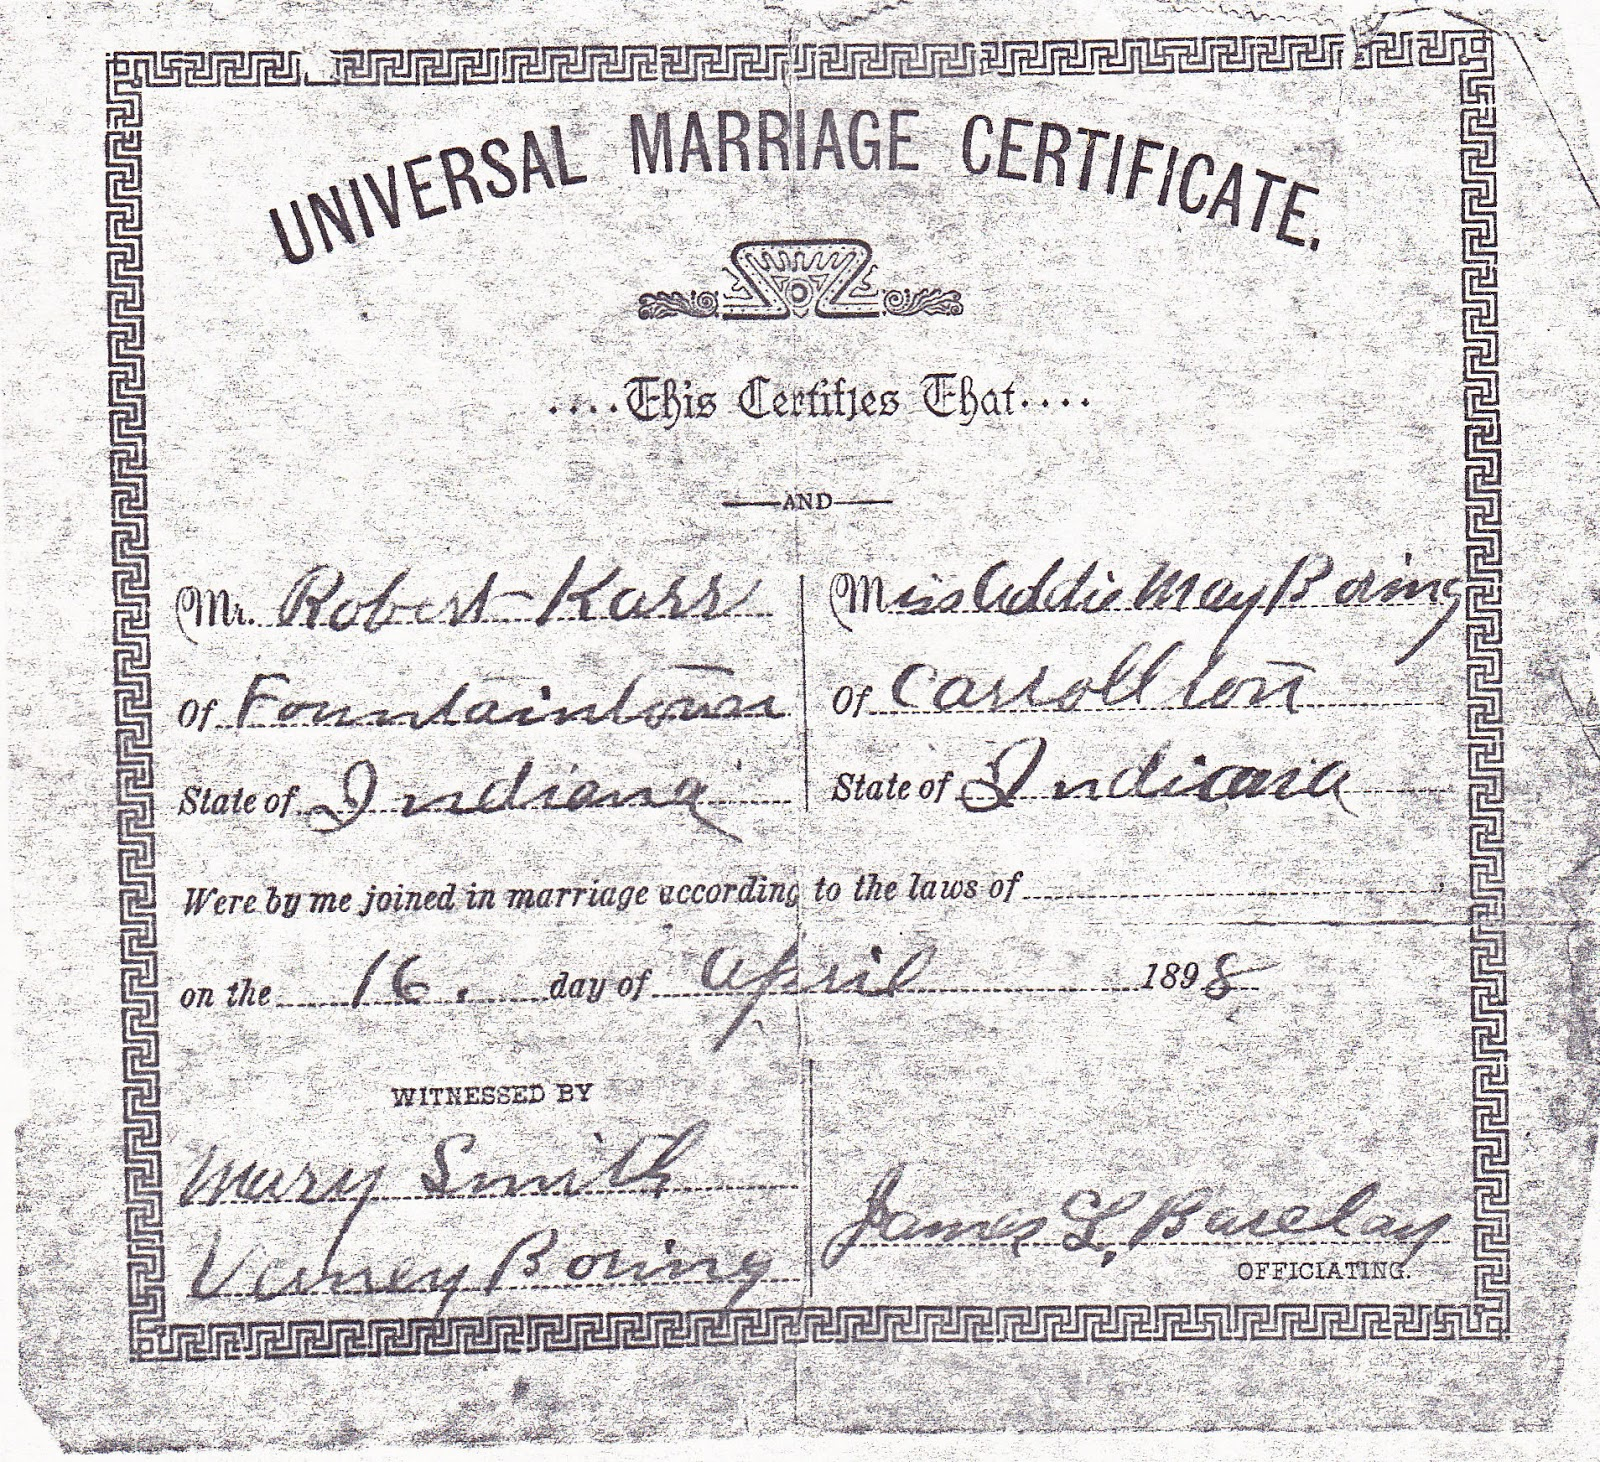 Marriage Records: Millie's Family History